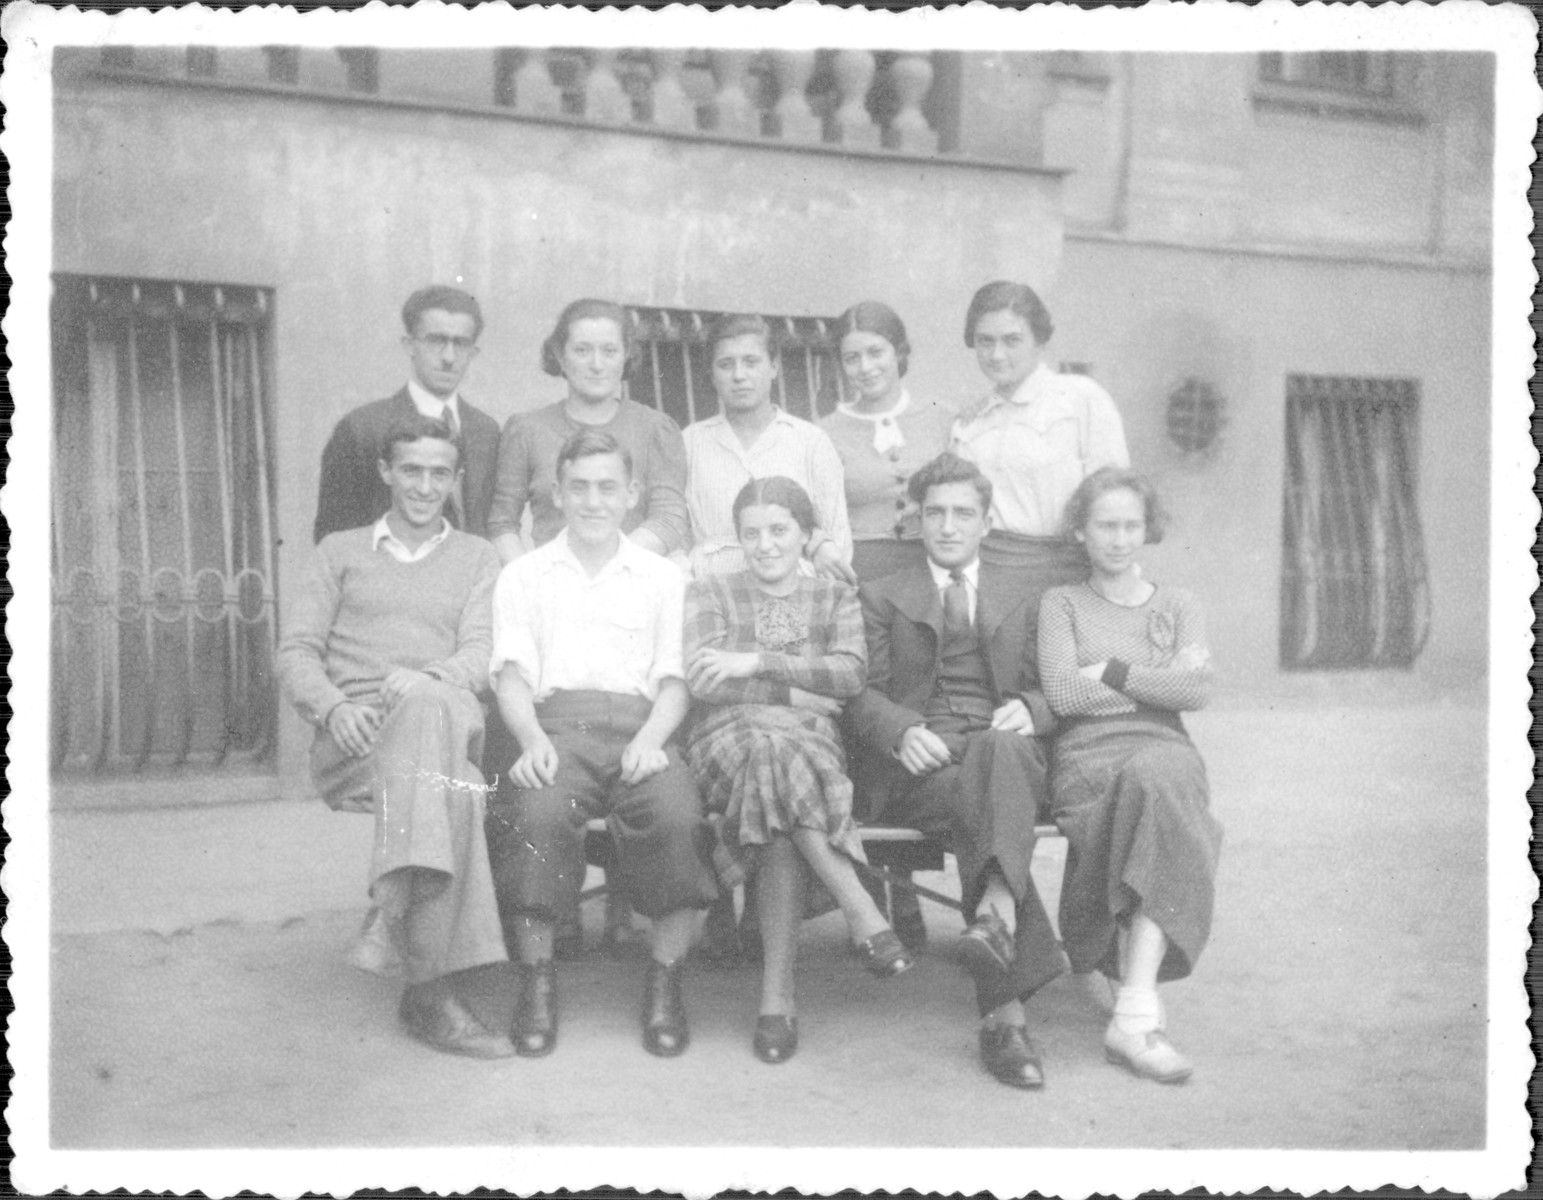 Group portrait of student teachers at the Korczak Orphanage.  All were education students who worked in the orphanage four hours a day. Among those pictured are Felix Gyp (first row, far left) and his fiance (second row, middle). They perished with the orphanage during the Holocaust.